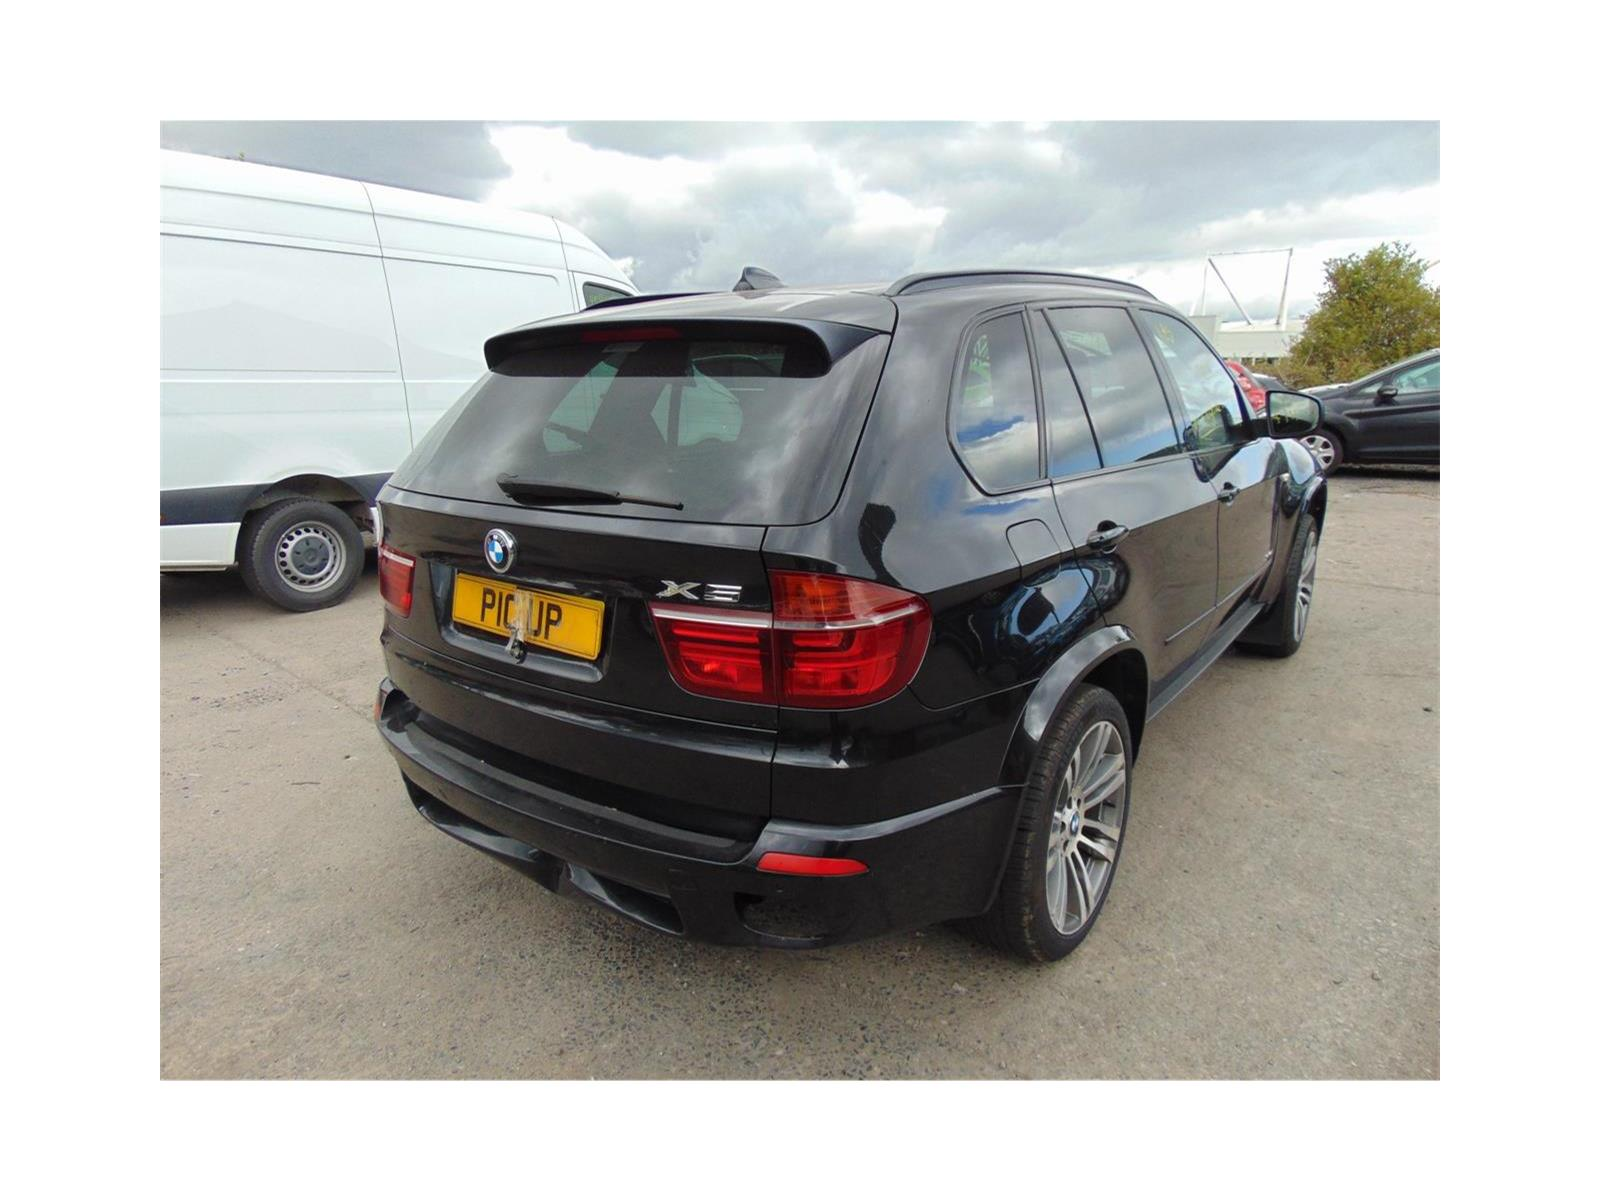 Pic-Up Spares - BMW X5 (ref: 61659) - Vehicle breaking for spares